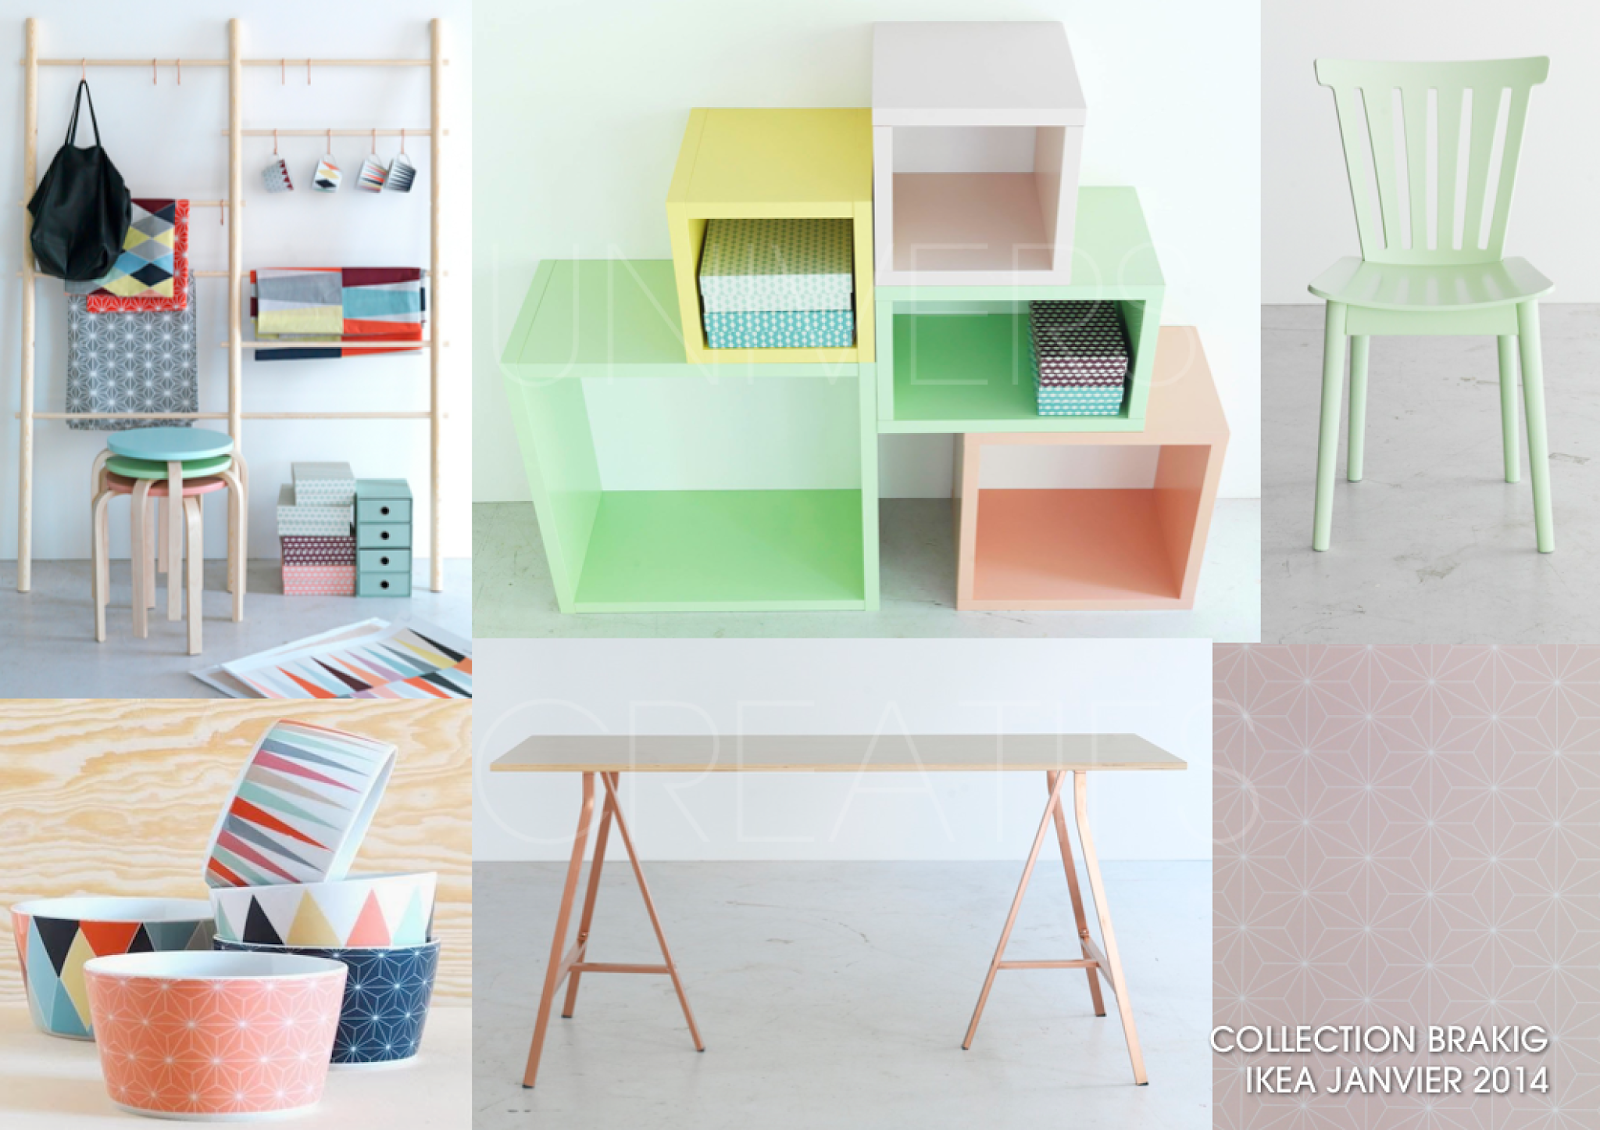 Univers creatifs ikea nouvelle collection capsule bravik - Nouvelle collection ikea ...